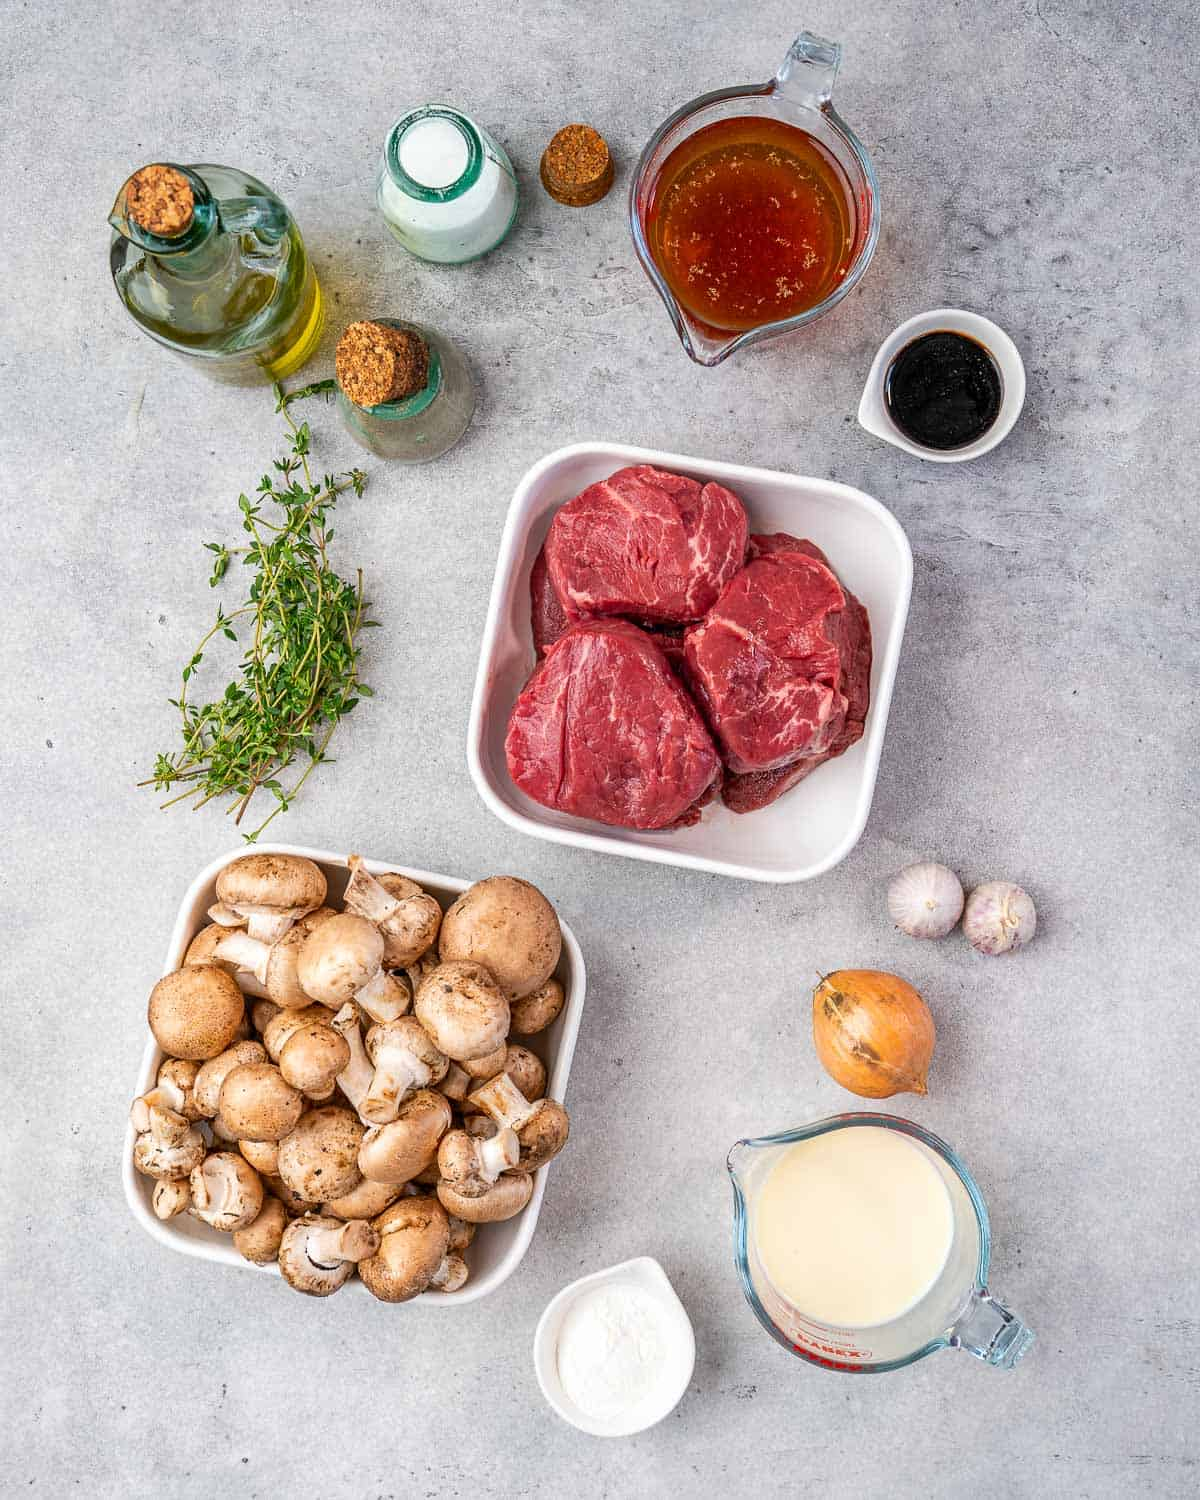 Ingredients for filet mignon and mushrooms on counter.